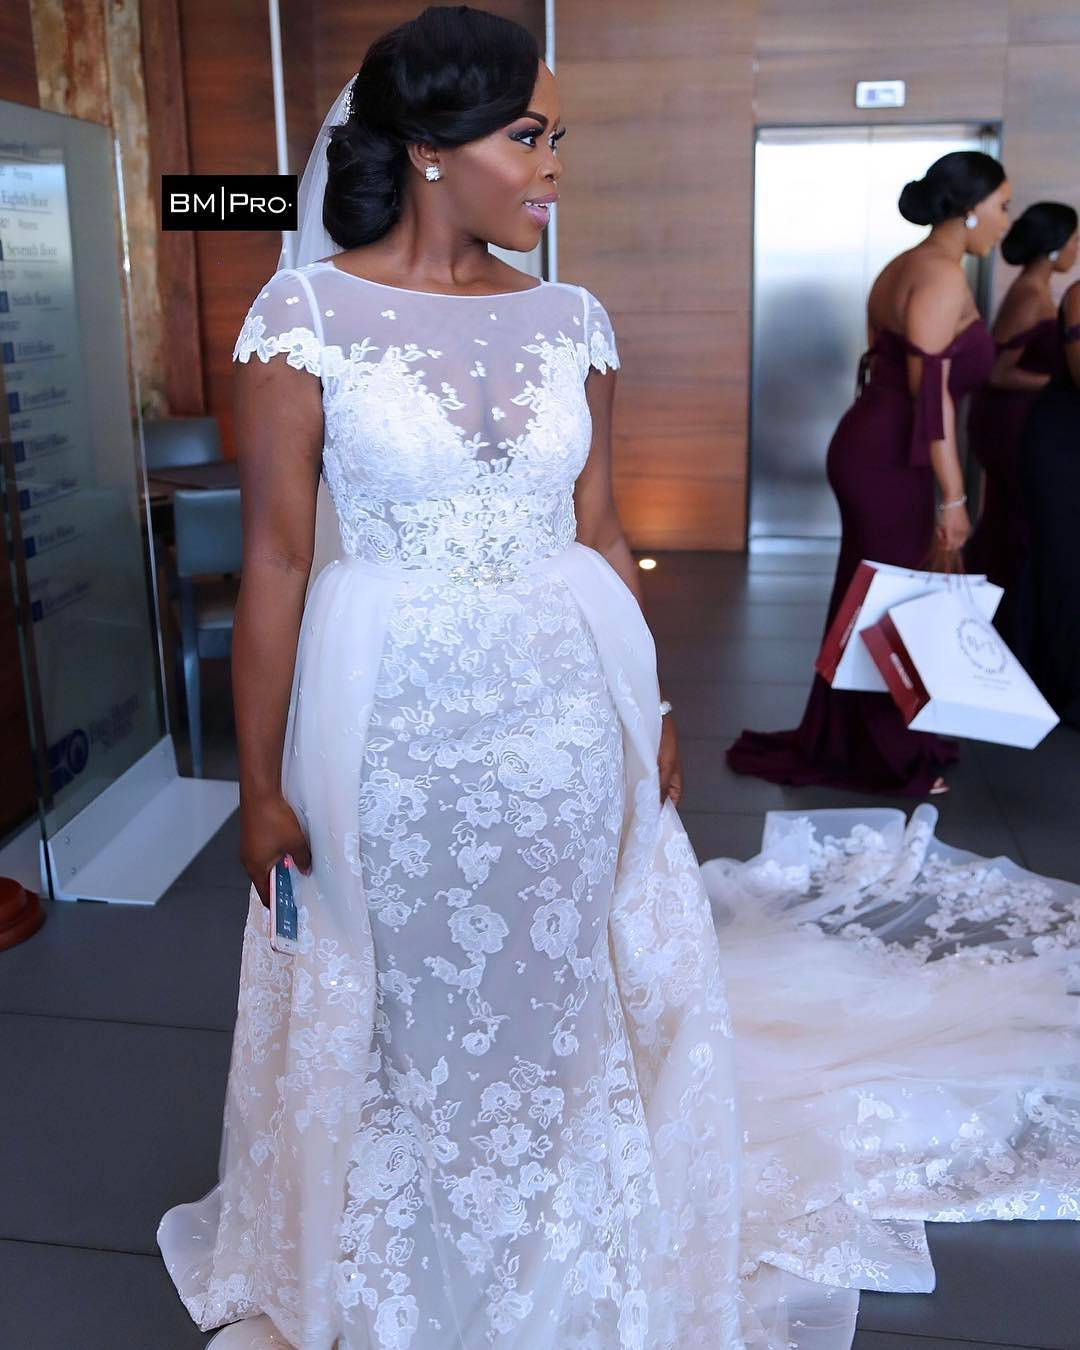 overskirt8 - Bridal Overskirts Are The Latest Bridal Trend Now